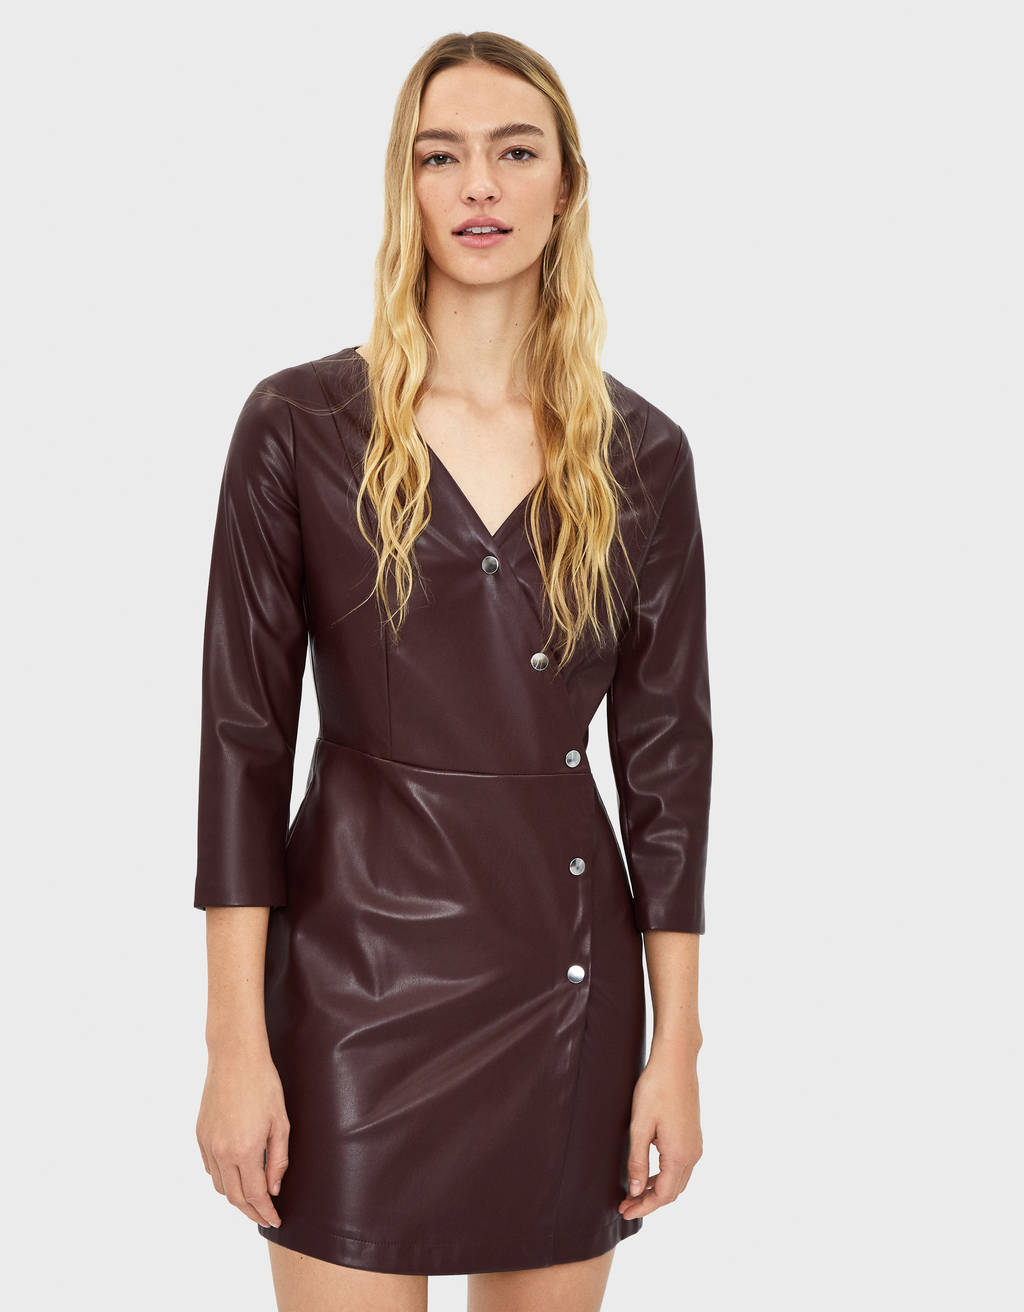 Faux leather dress with buttons